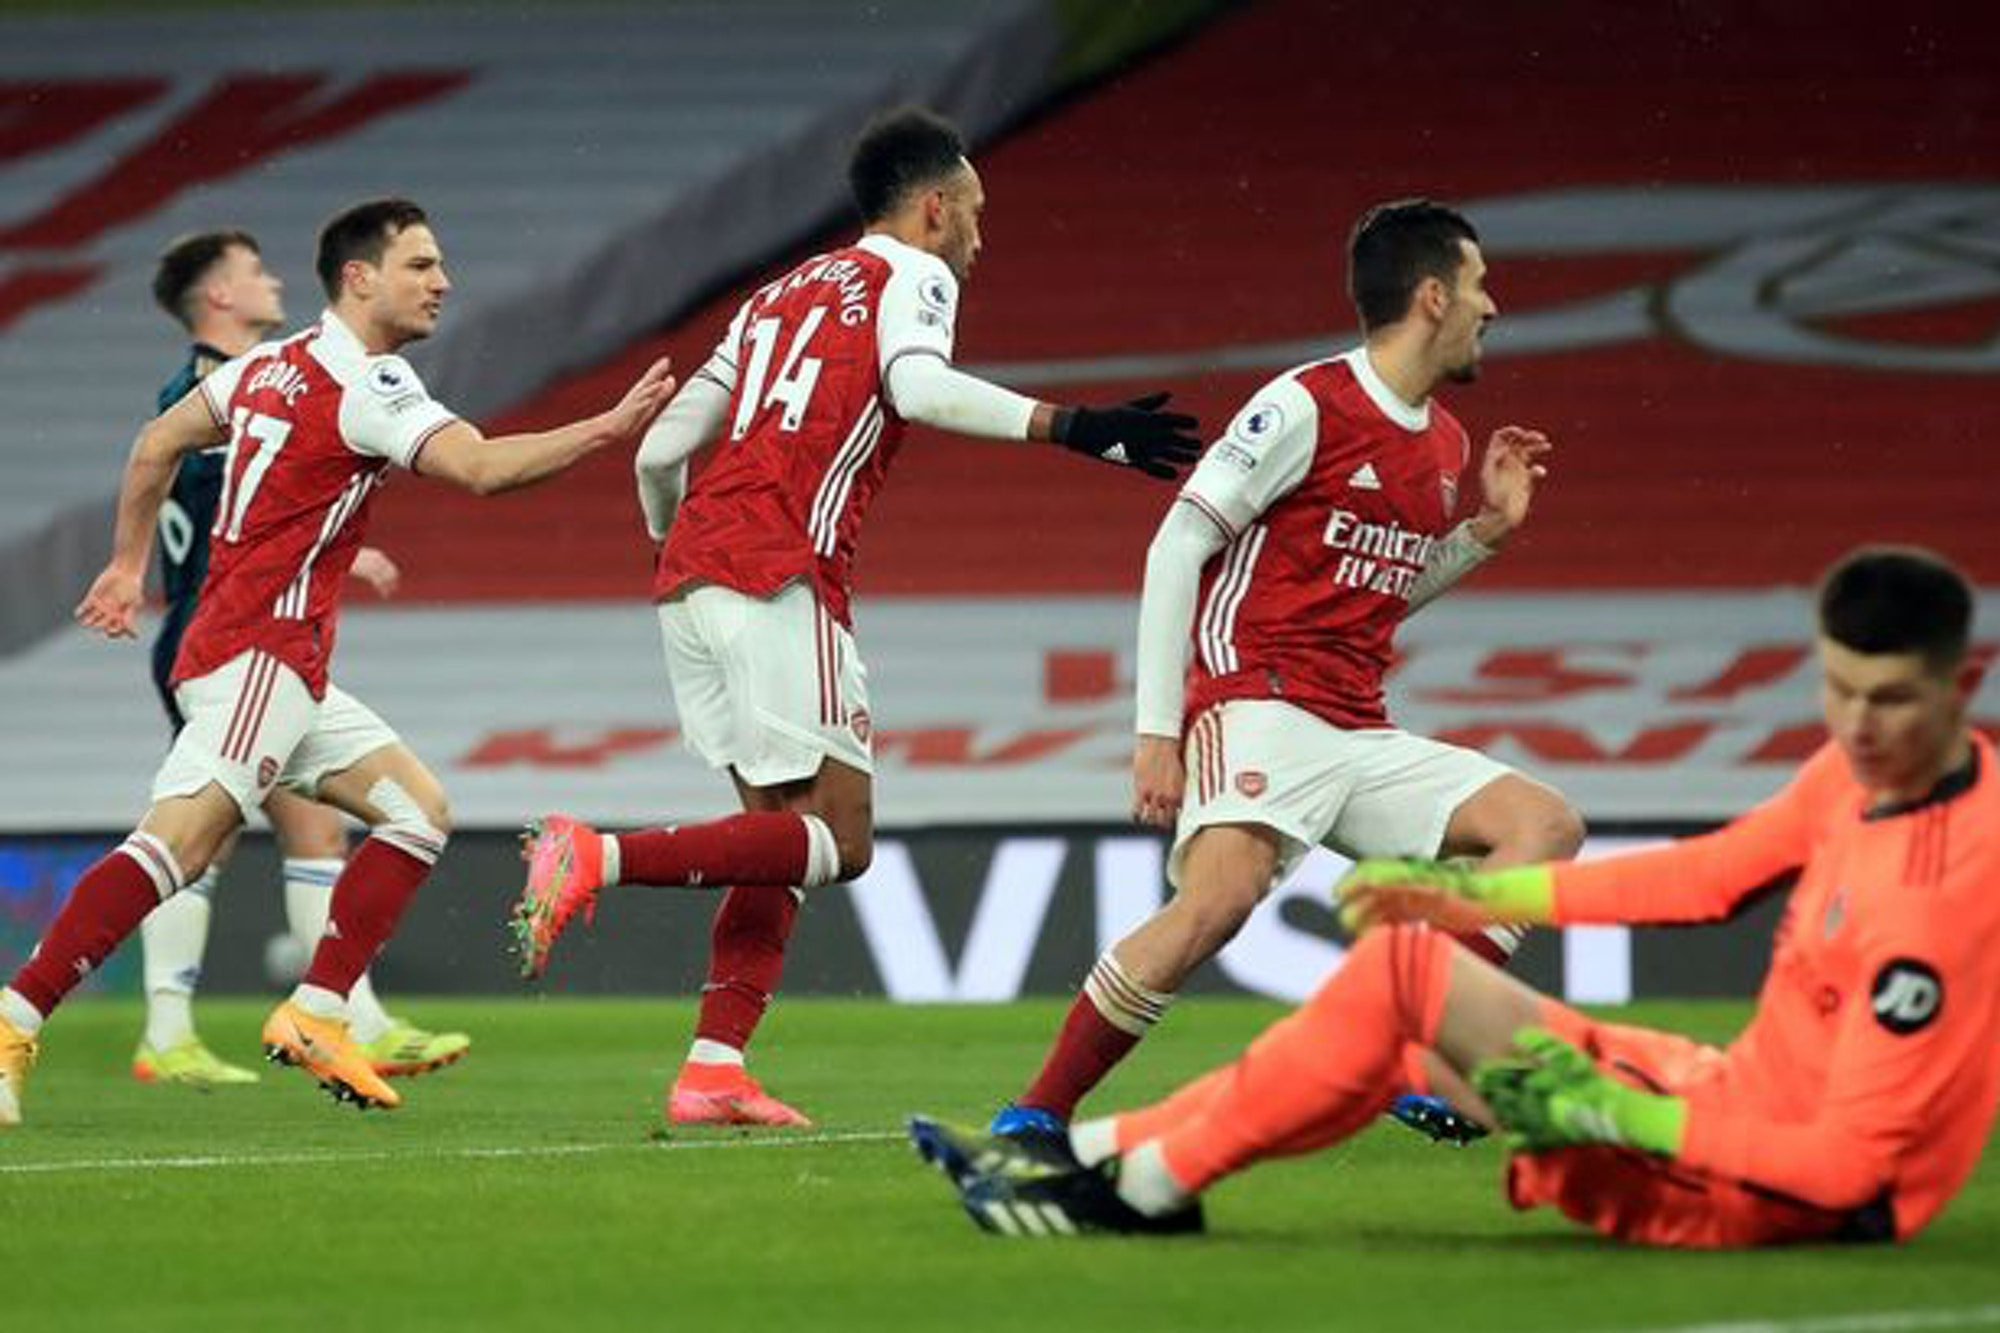 Video: Official highlights and goals from Arsenal's six-goal thriller with Leeds